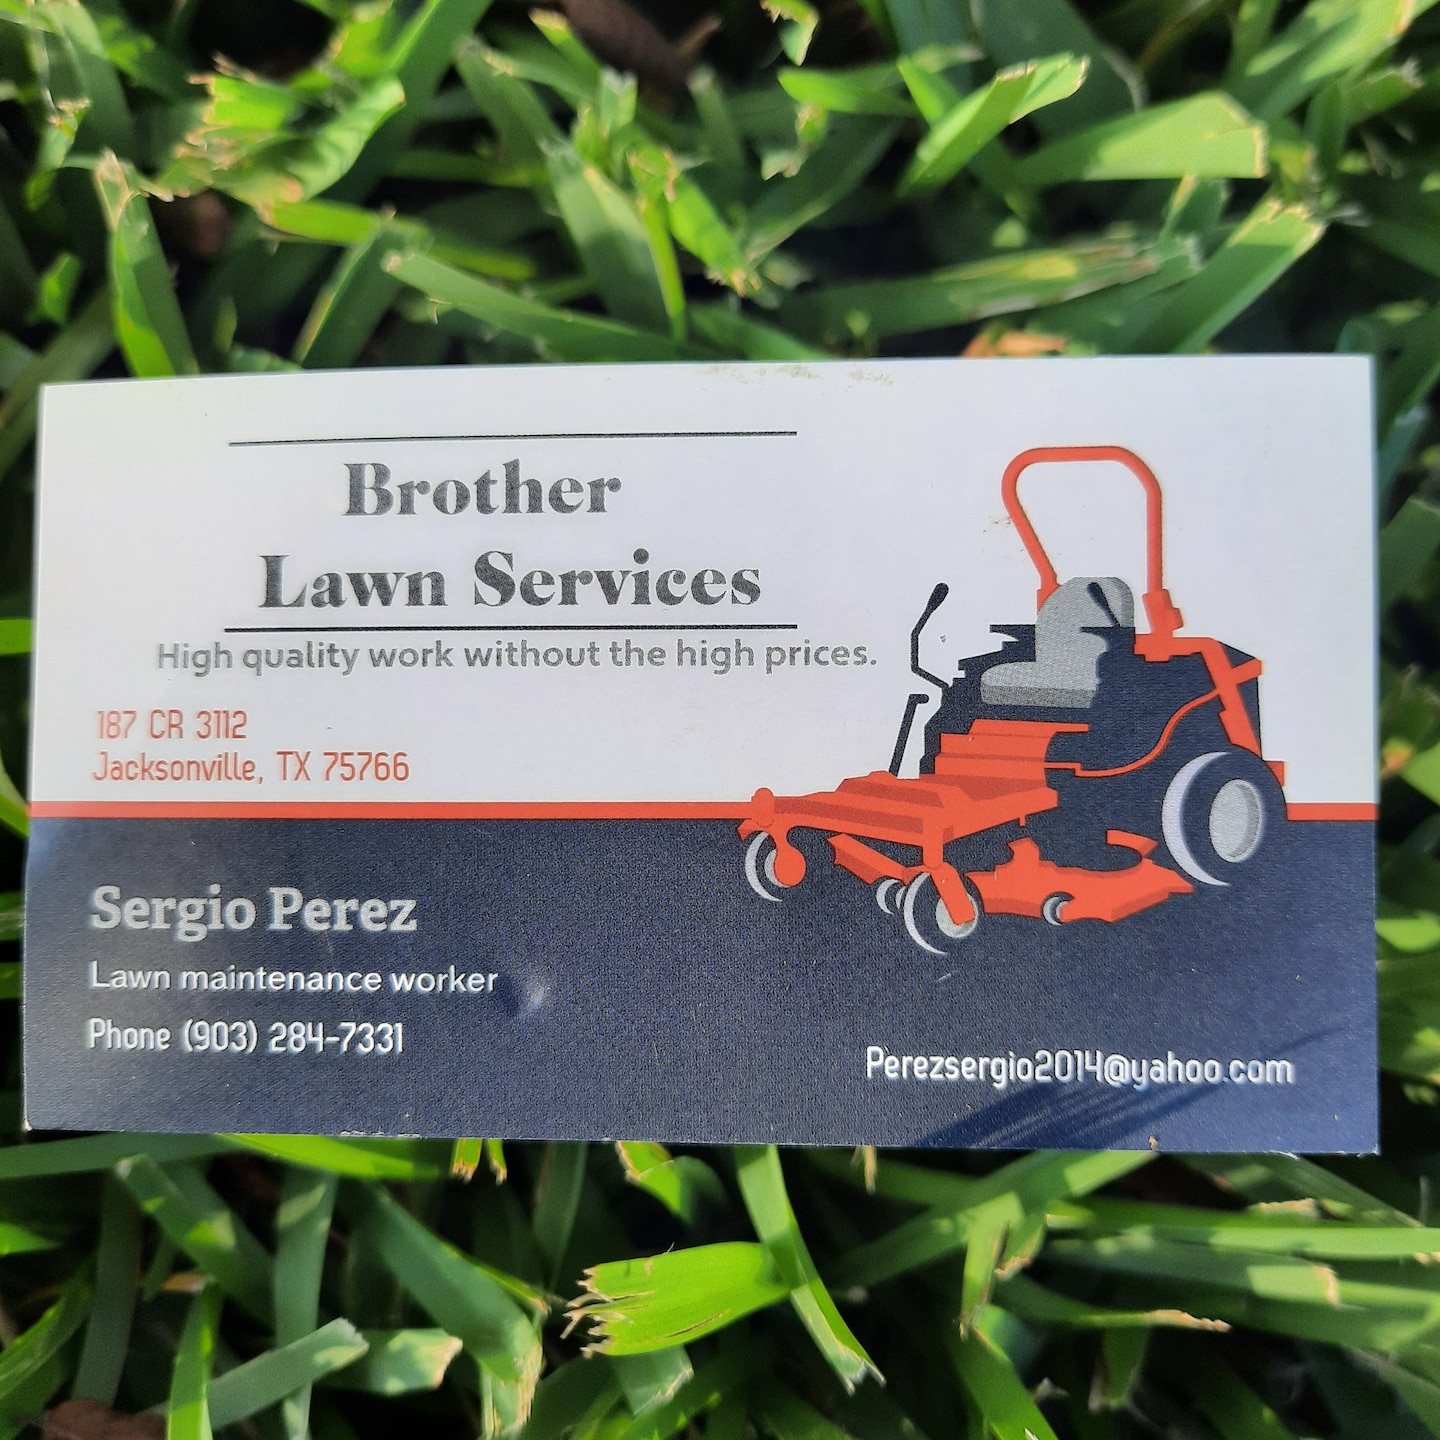 Brother lawn services